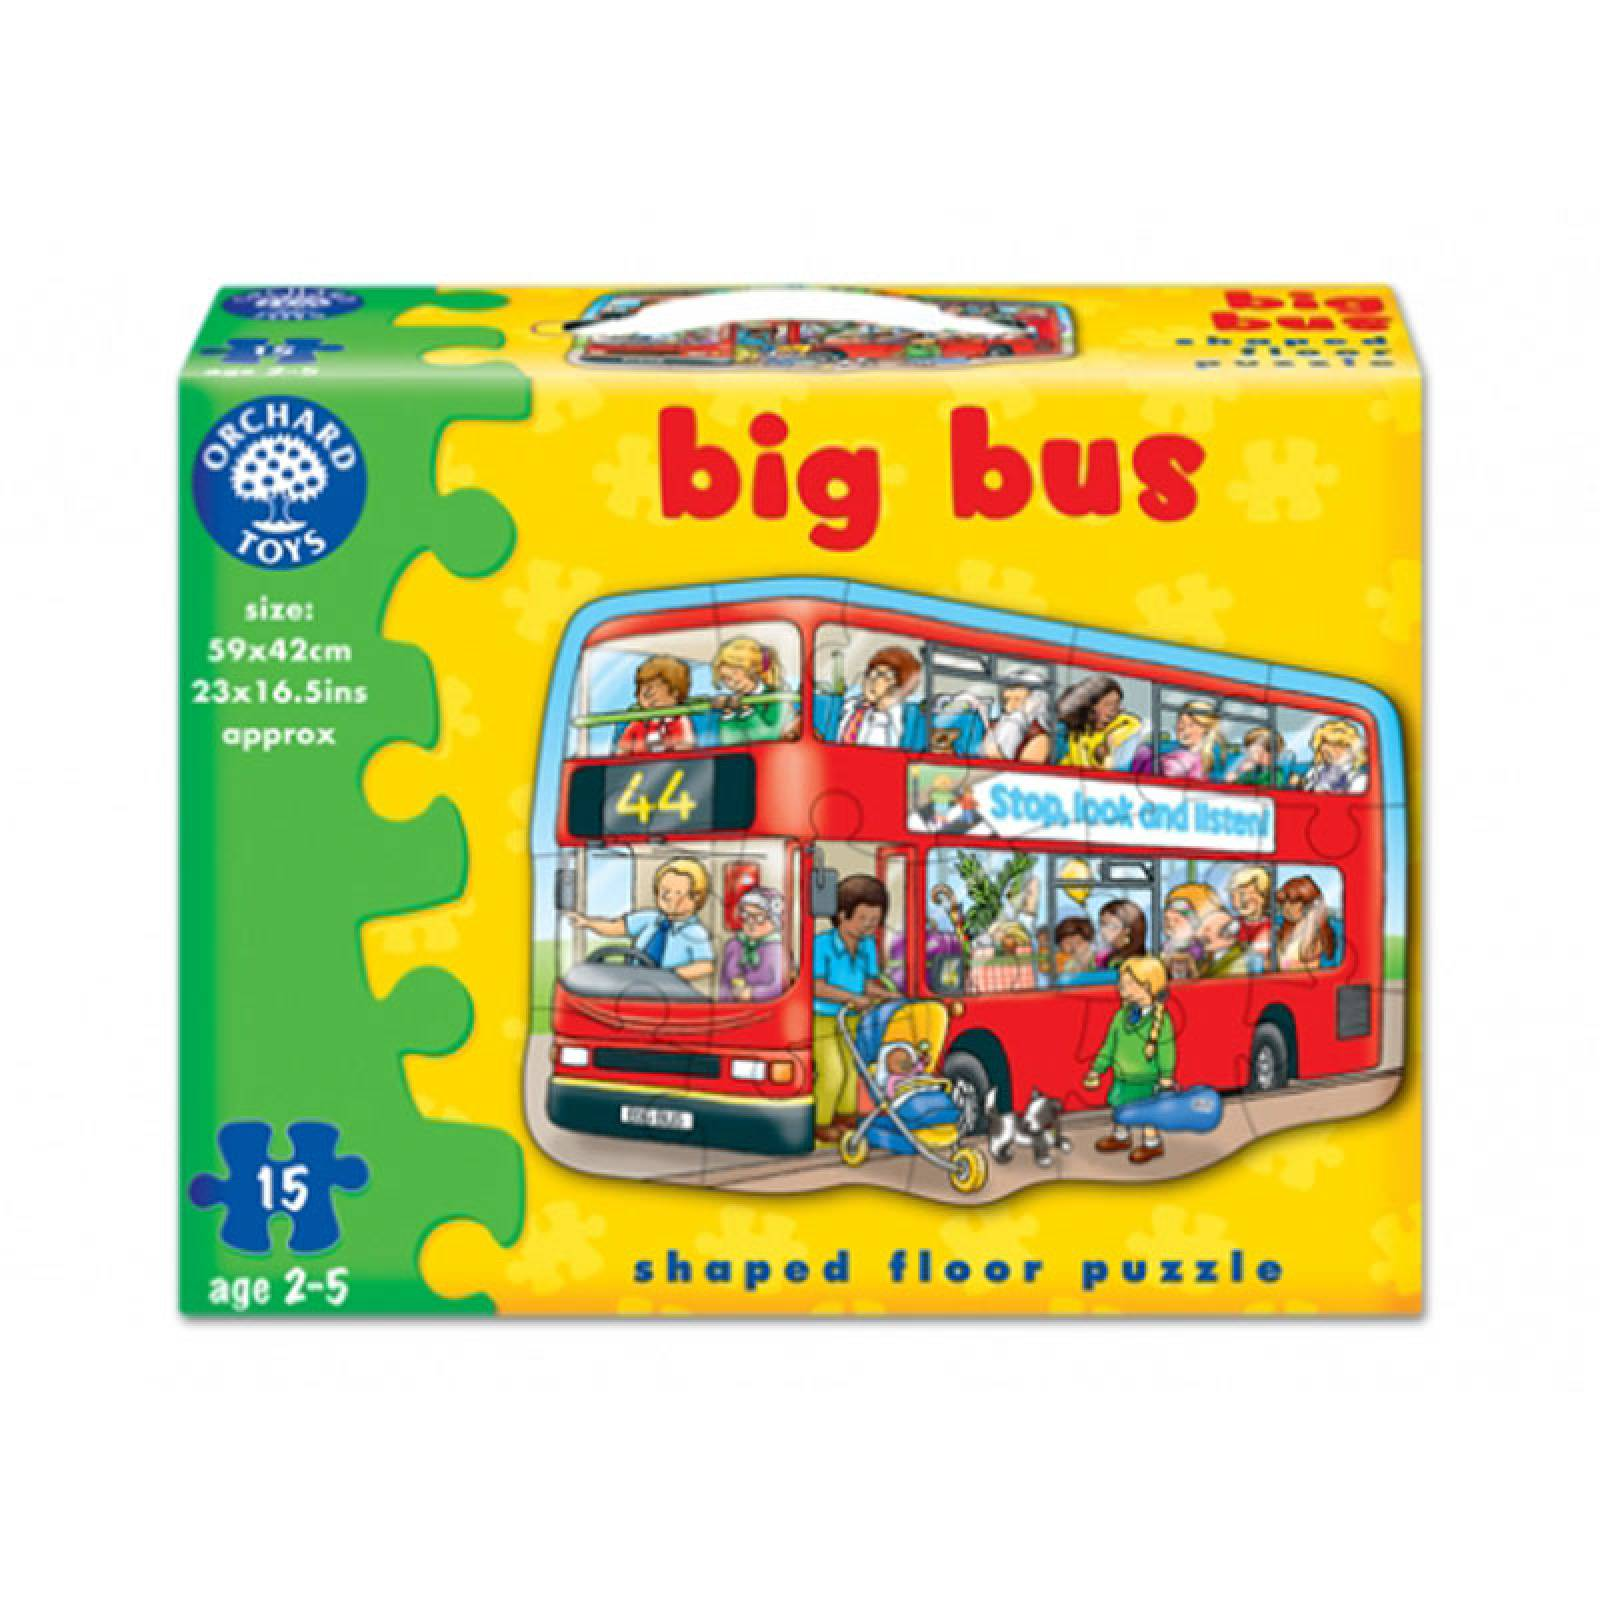 Big Bus Jigsaw Puzzle By Orchard Toys 2-5yrs thumbnails